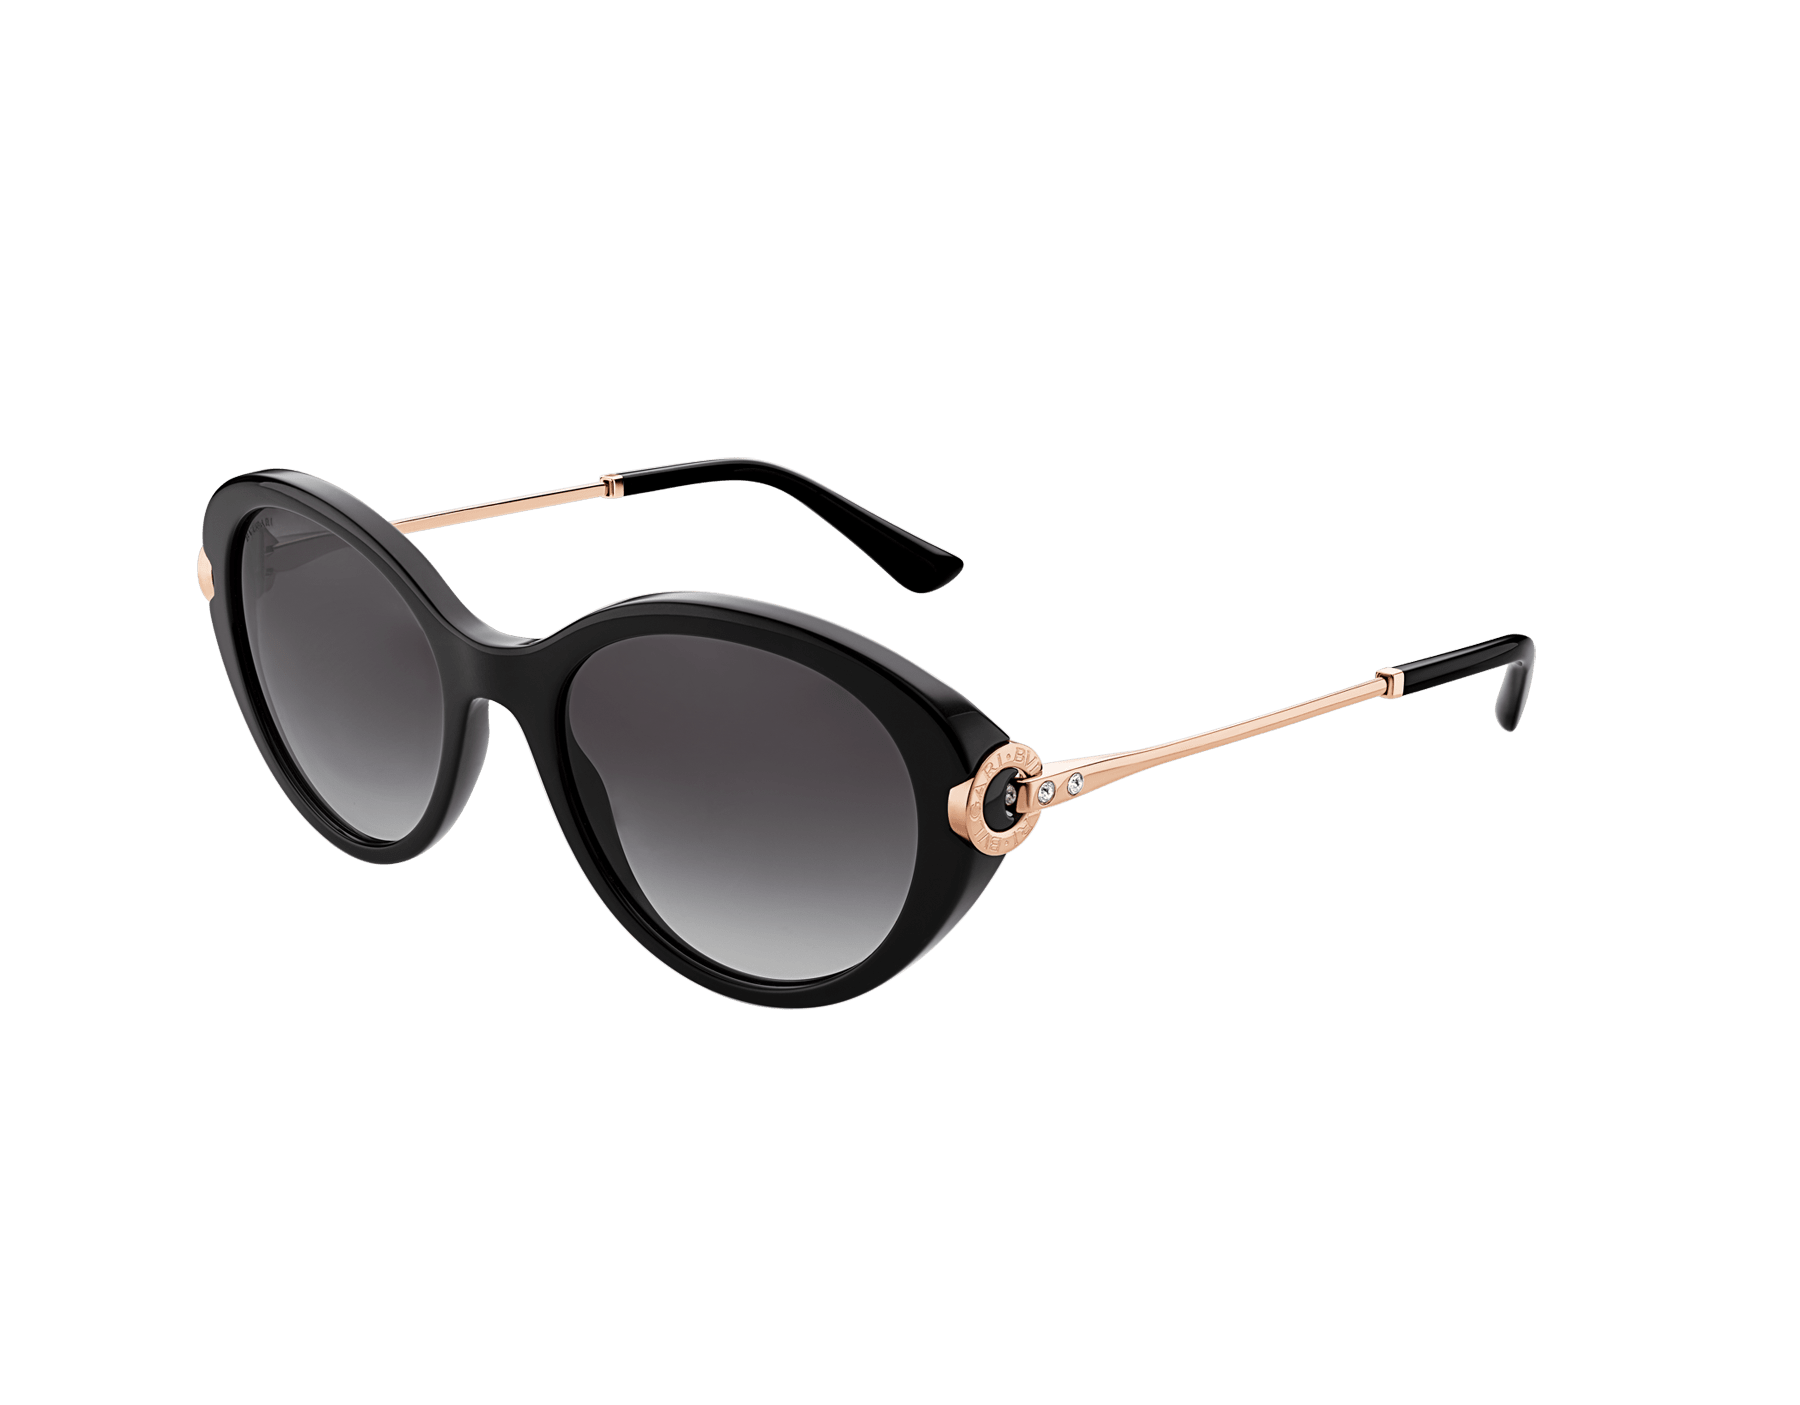 BVLGARI BVLGARI oval acetate sunglasses with metal décor and crystals. 903797 image 1